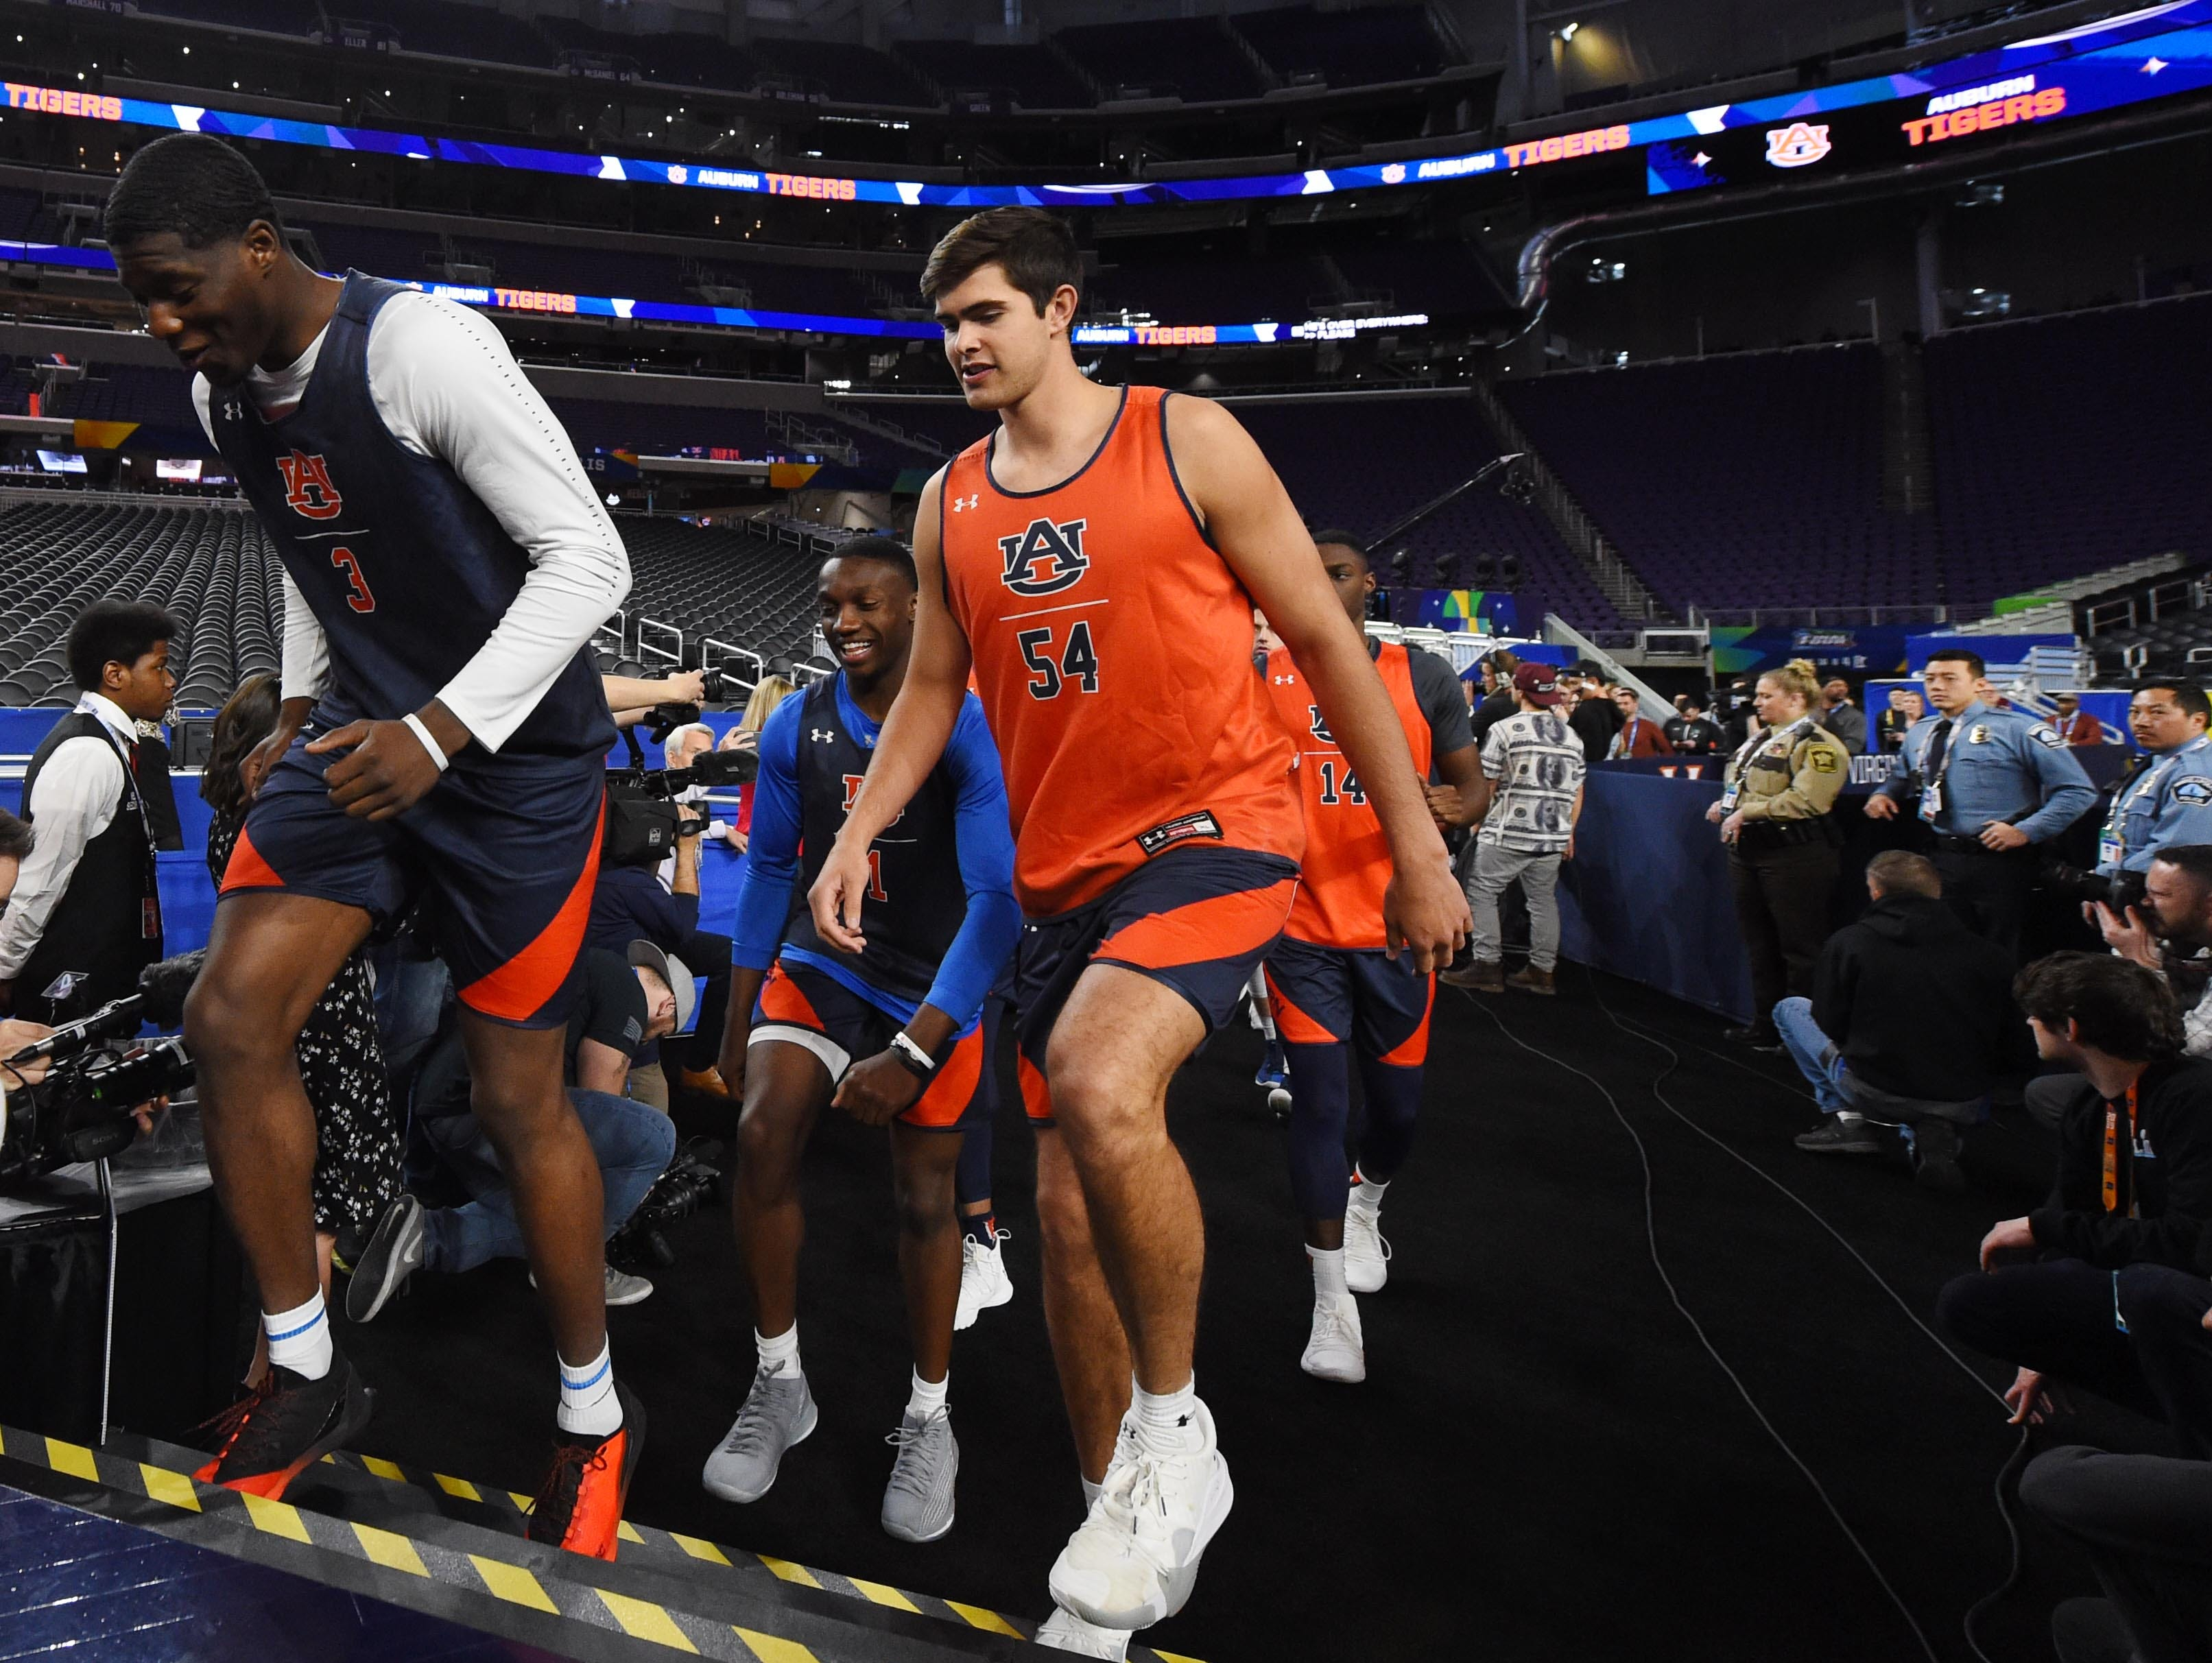 Apr 5, 2019; Minneapolis, MN, USA; Auburn Tigers forward Danjel Purifoy (3) and forward Thomas Collier (54) head to the court during practice for the 2019 men's Final Four at US Bank Stadium. Mandatory Credit: Robert Deutsch-USA TODAY Sports